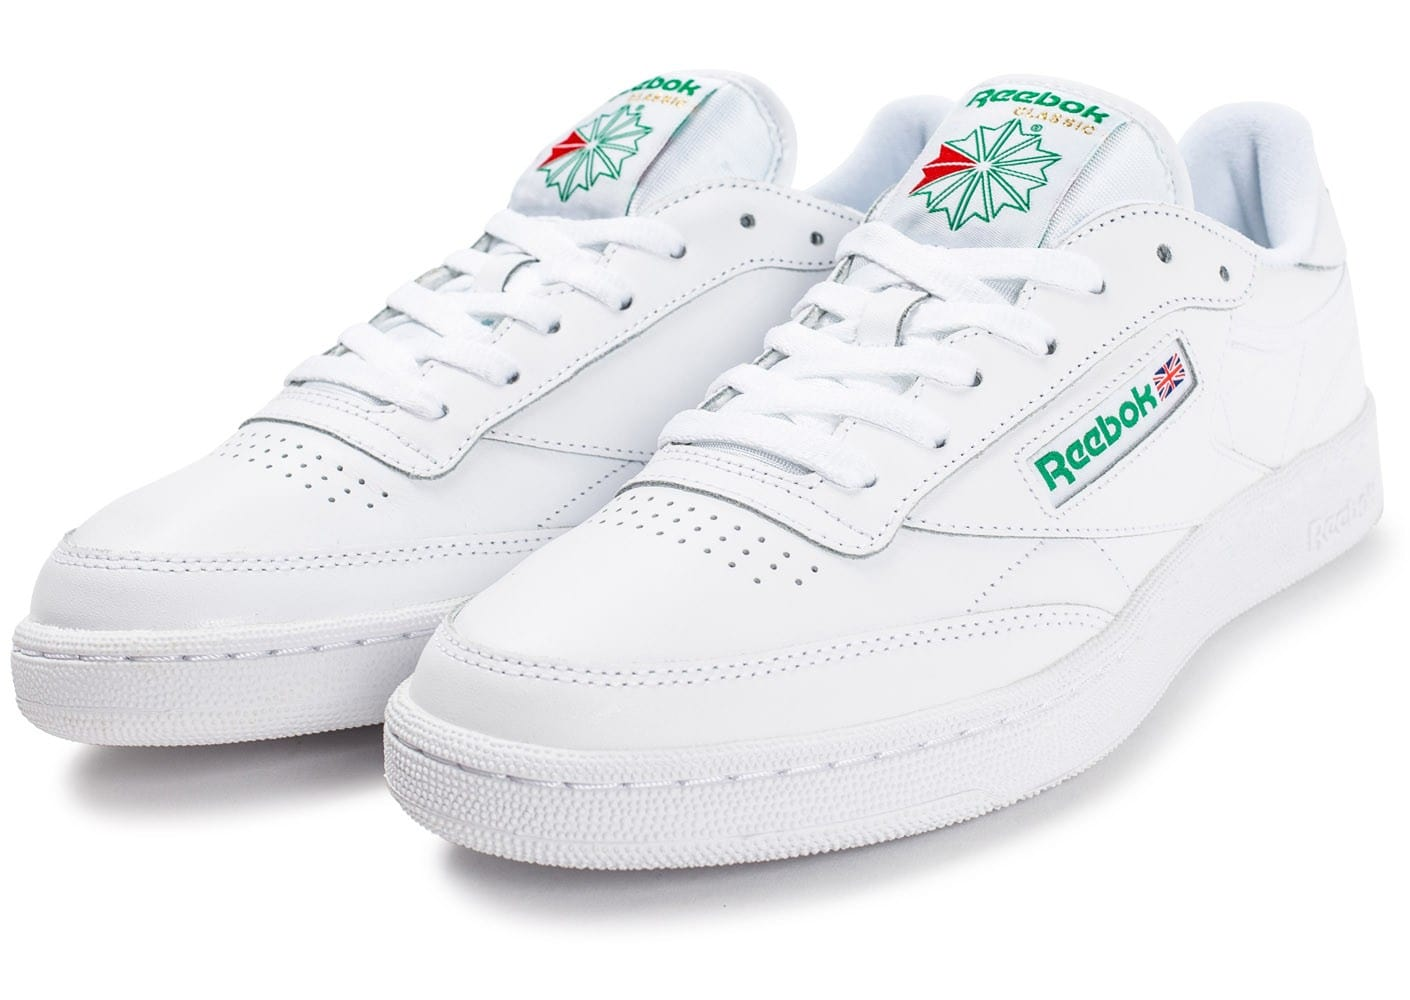 c chausport blanche 85 club reebok CQdtrsh